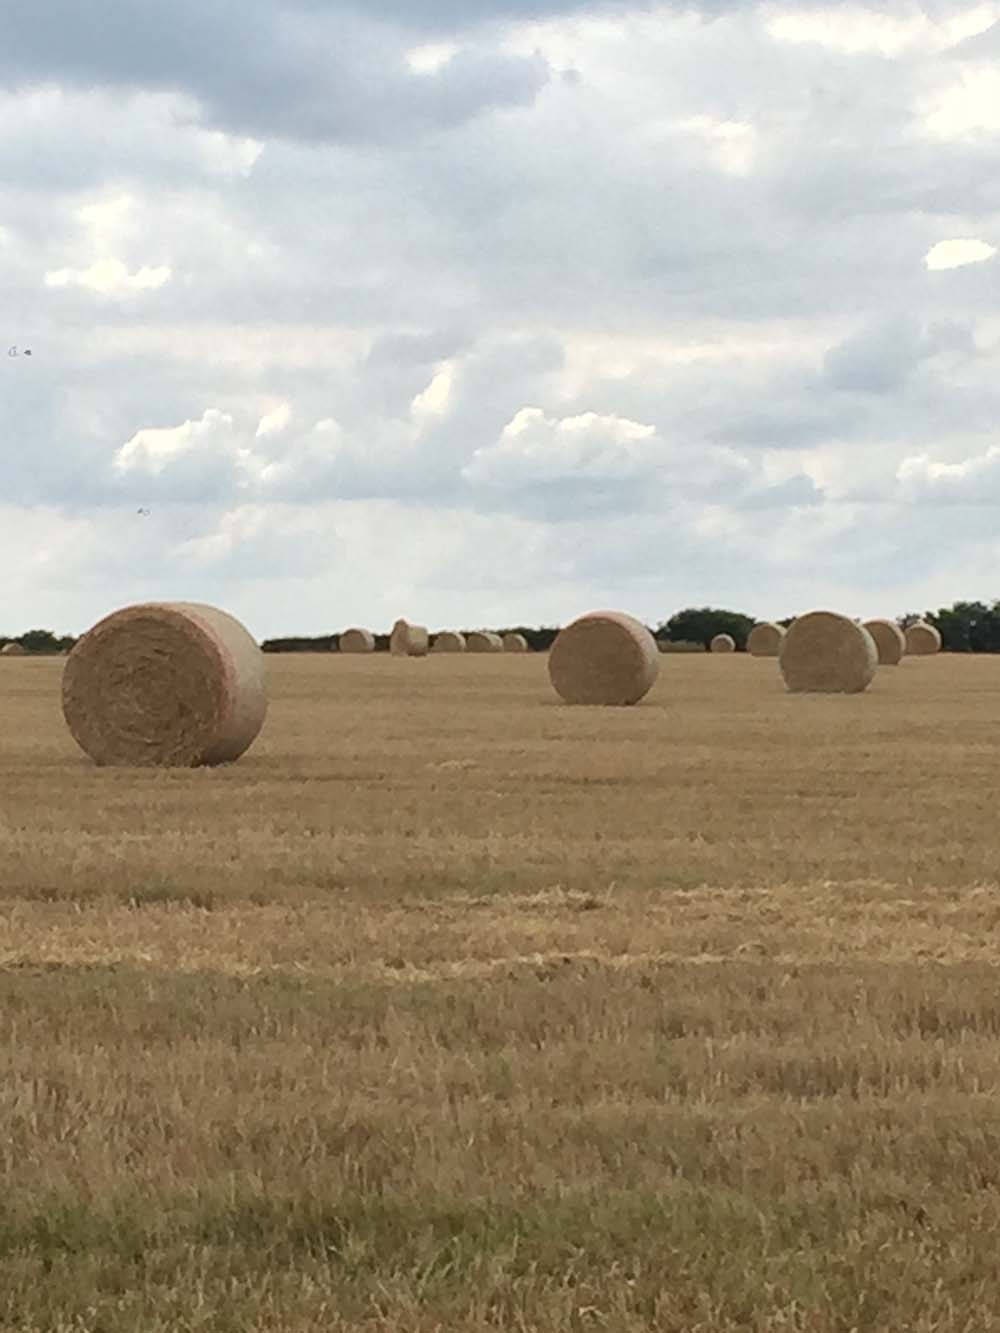 Bales of hay dotting the landscape